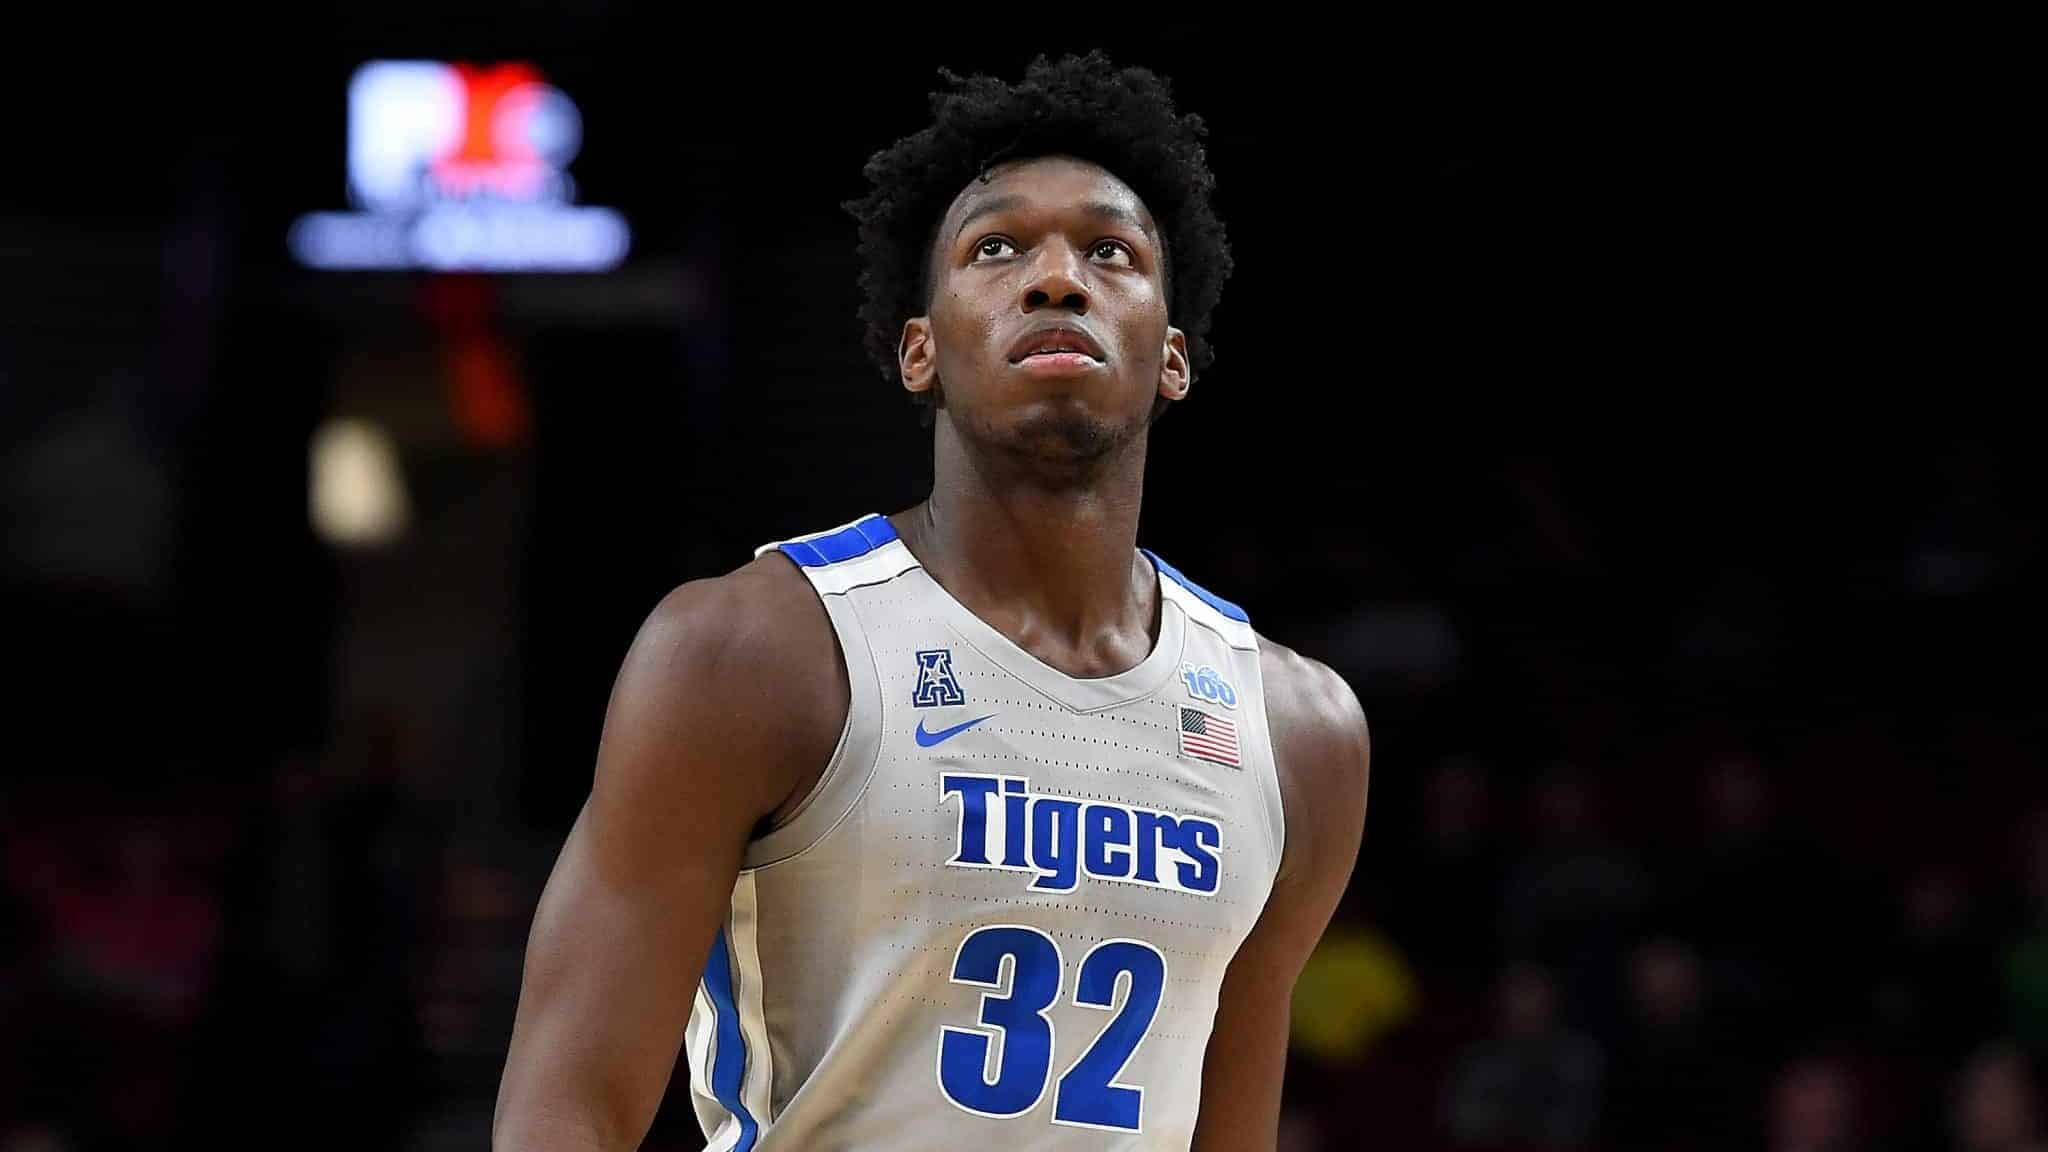 PORTLAND, OREGON - NOVEMBER 12: James Wiseman #32 of the Memphis Tigers walks up court during the first half of the game against the Oregon Ducks between the Oregon Ducks and Memphis Grizzlies at Moda Center on November 12, 2019 in Portland, Oregon.